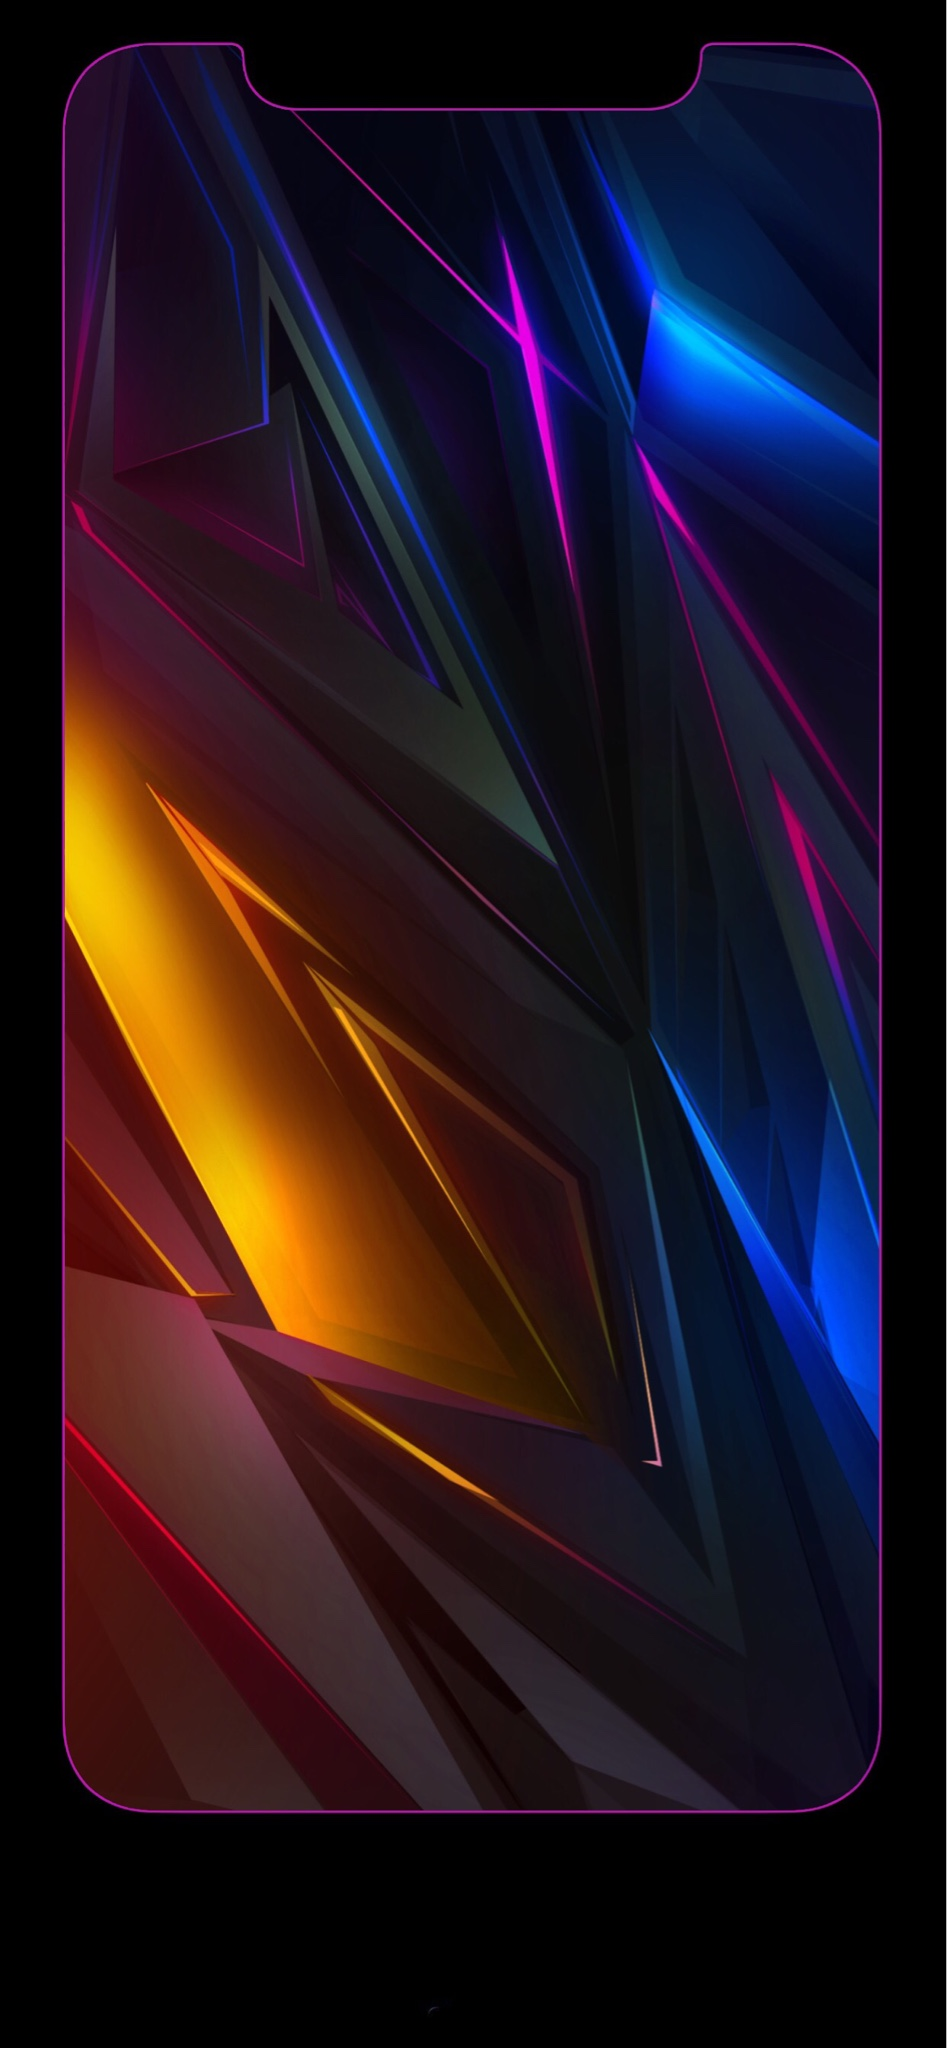 The iPhone XS Max/Pro Max Wallpaper Thread - Page 10 ...